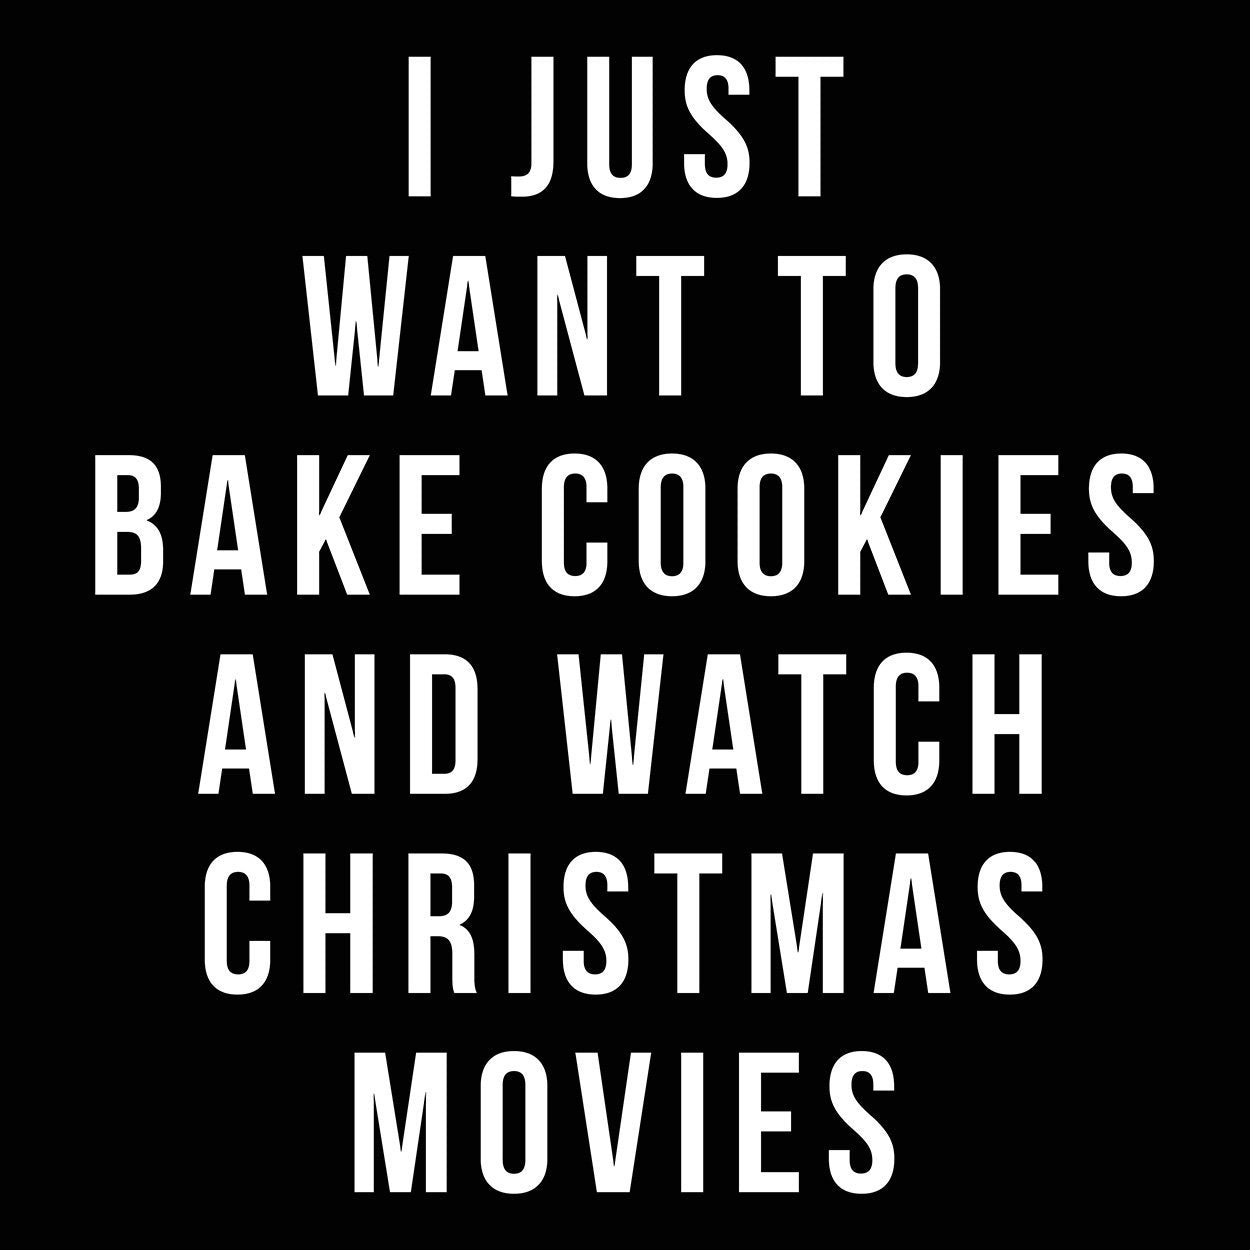 Bake Cookies And Watch Christmas Movies - DonkeyTees